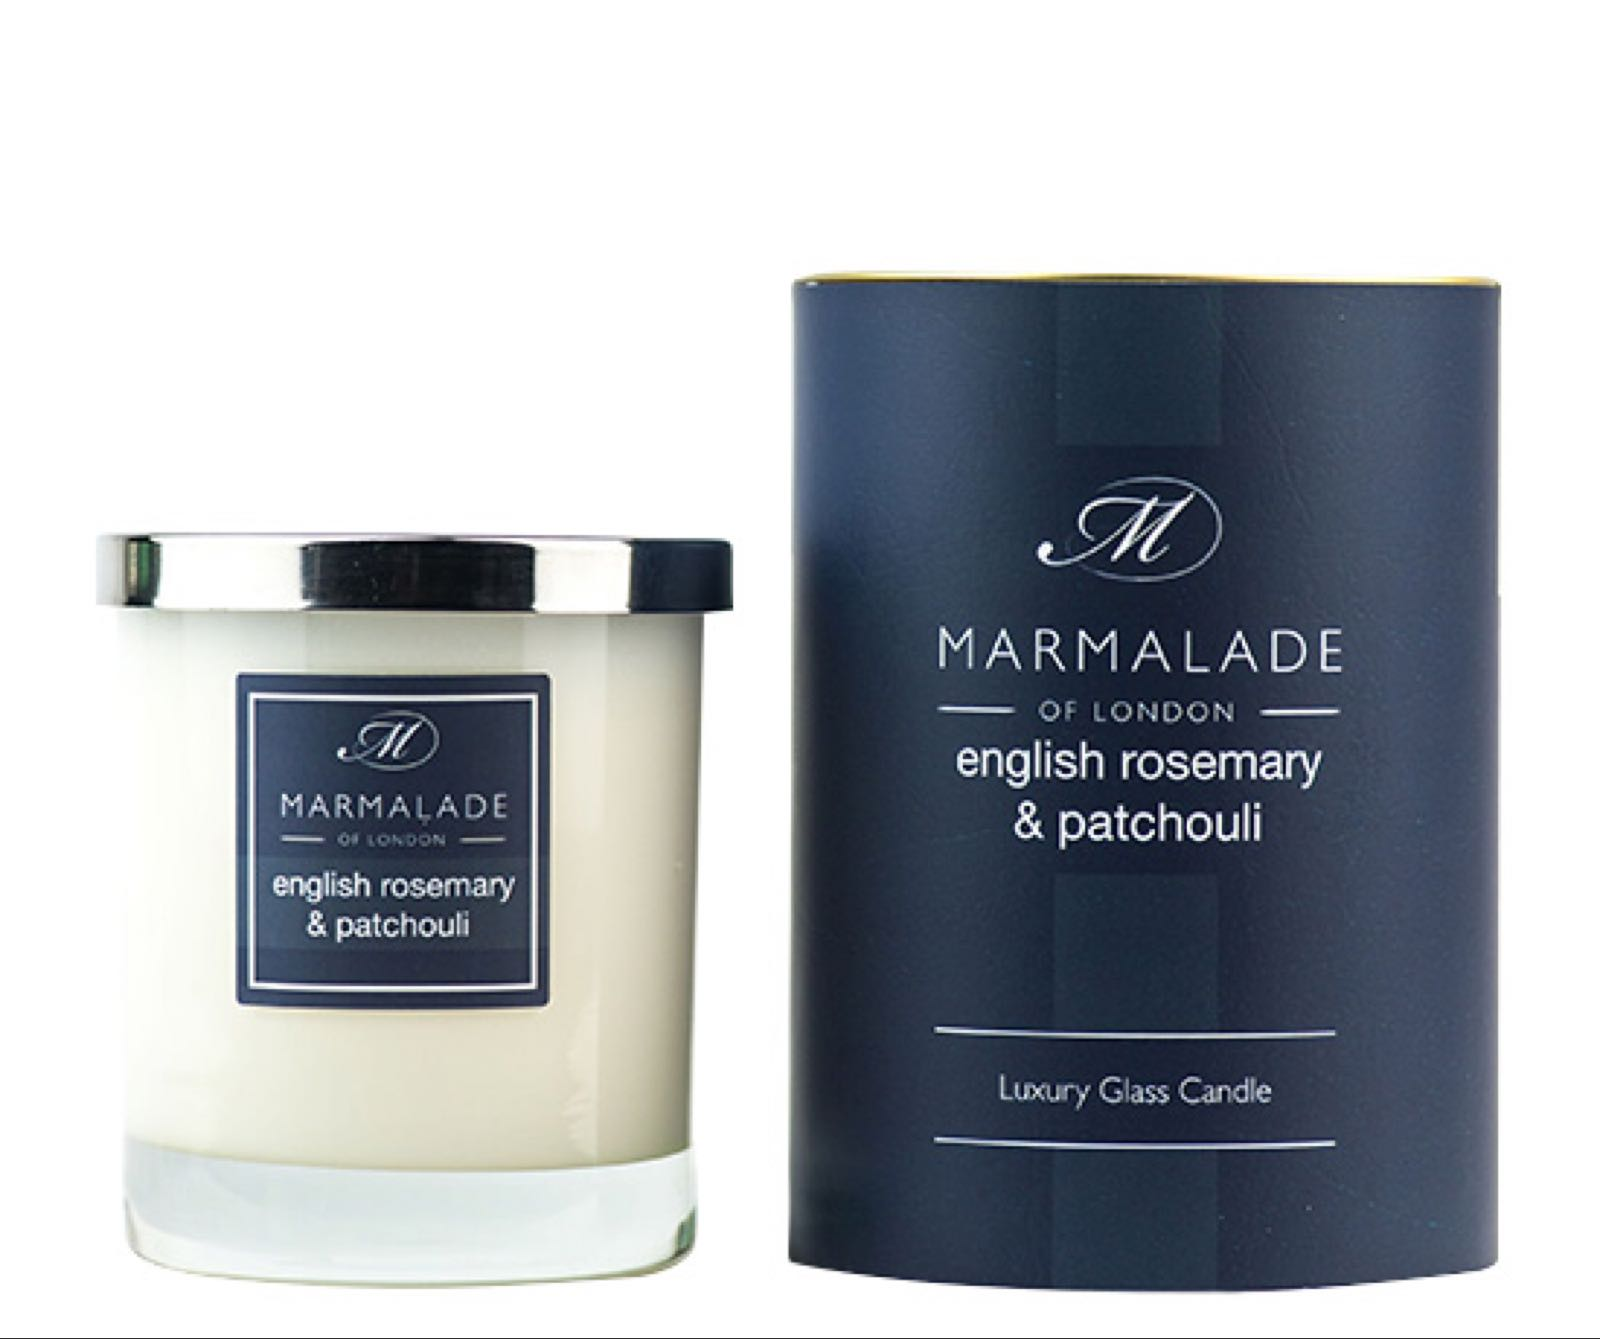 English Rosemary & Patchouli Glass Candle